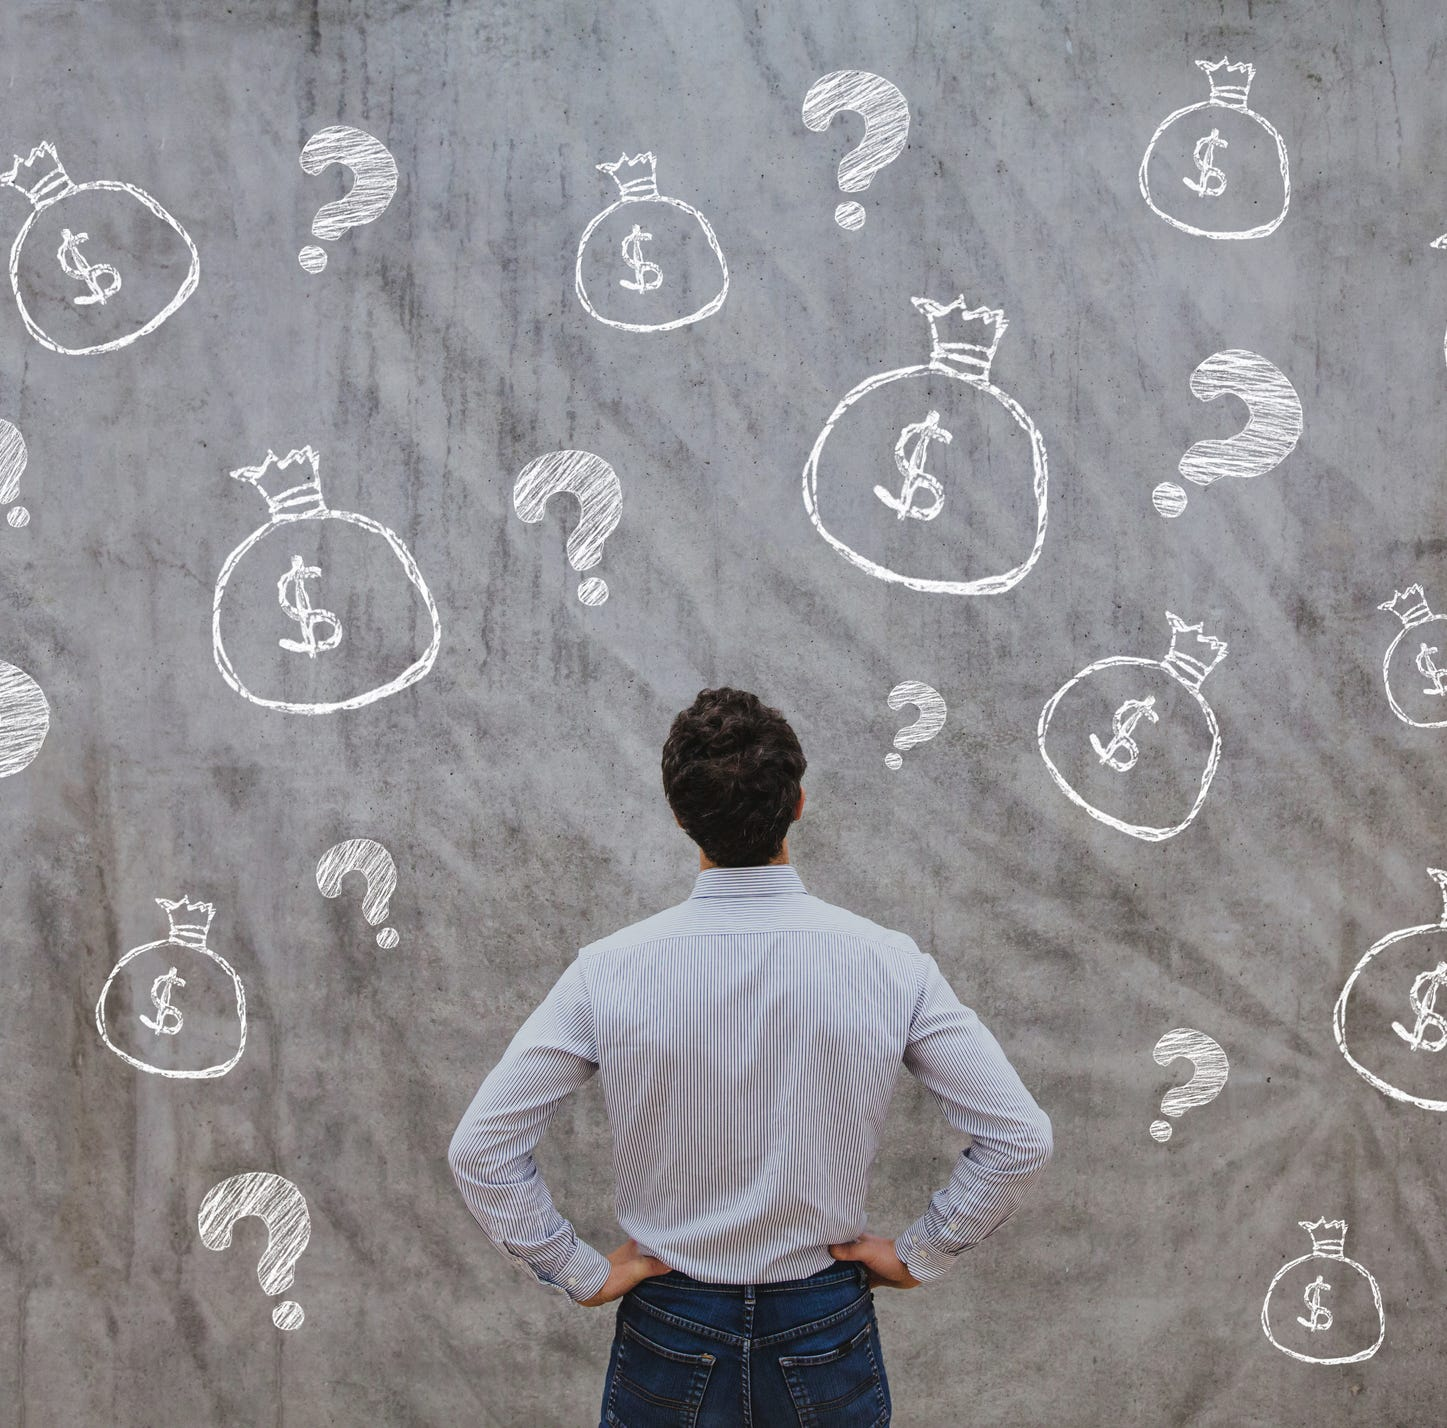 Small business owners need to know their financial numbers